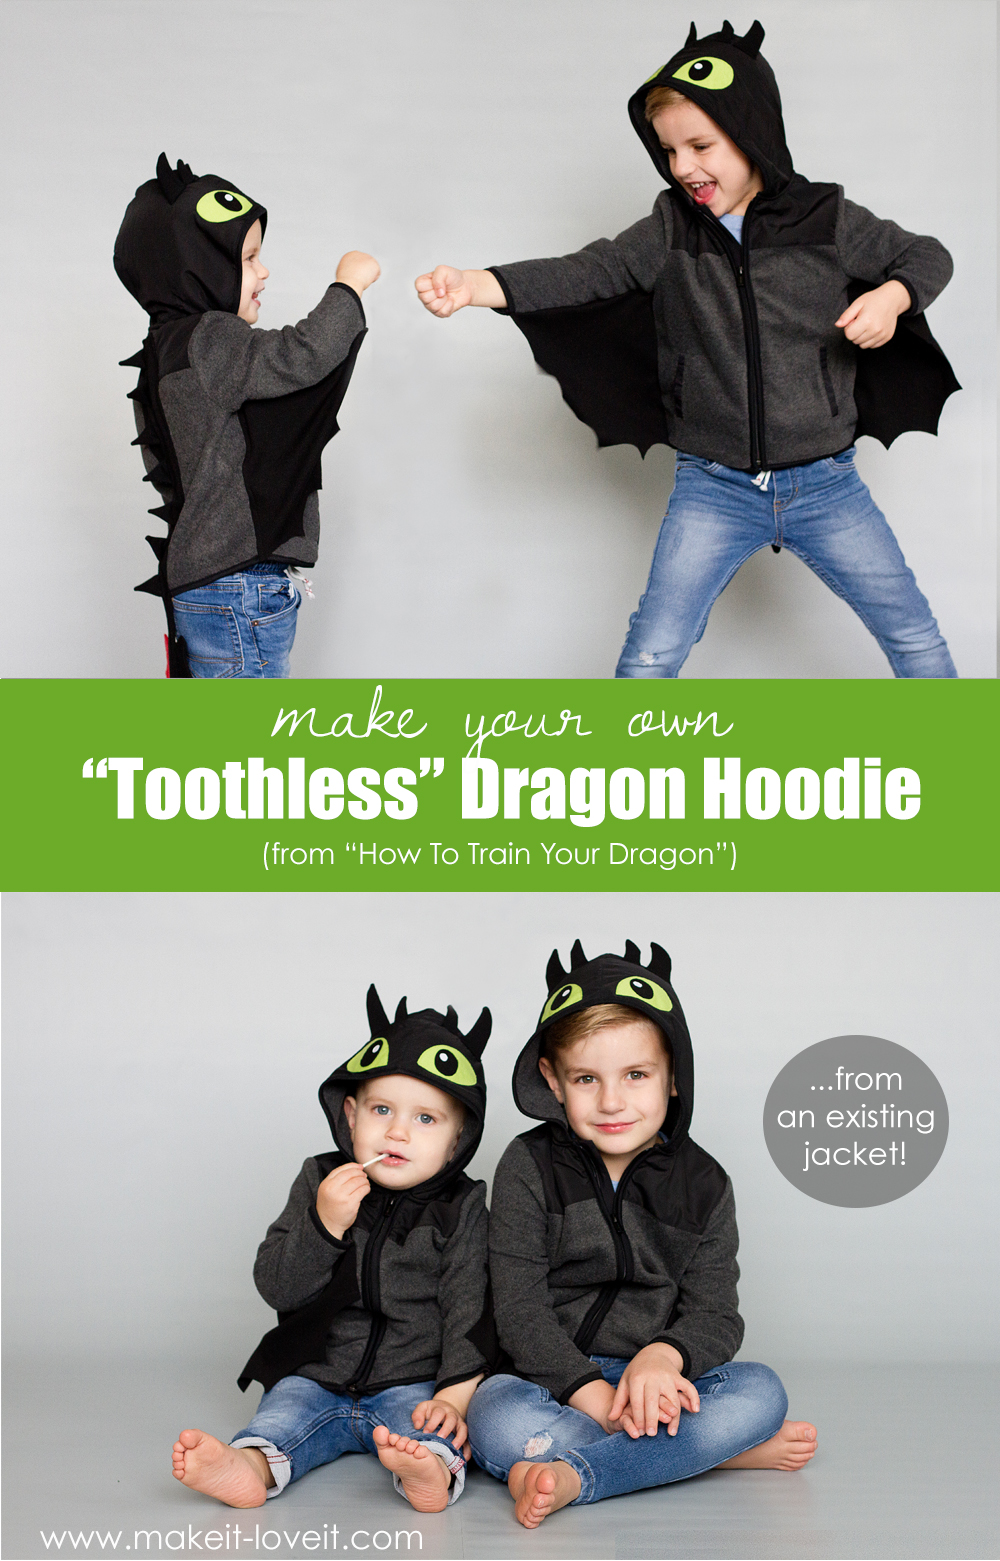 Make A Toothless Dragon Hoodie From An Existing Jacket Dragon Hoodie Toothless Costume Diy Dragon Costume